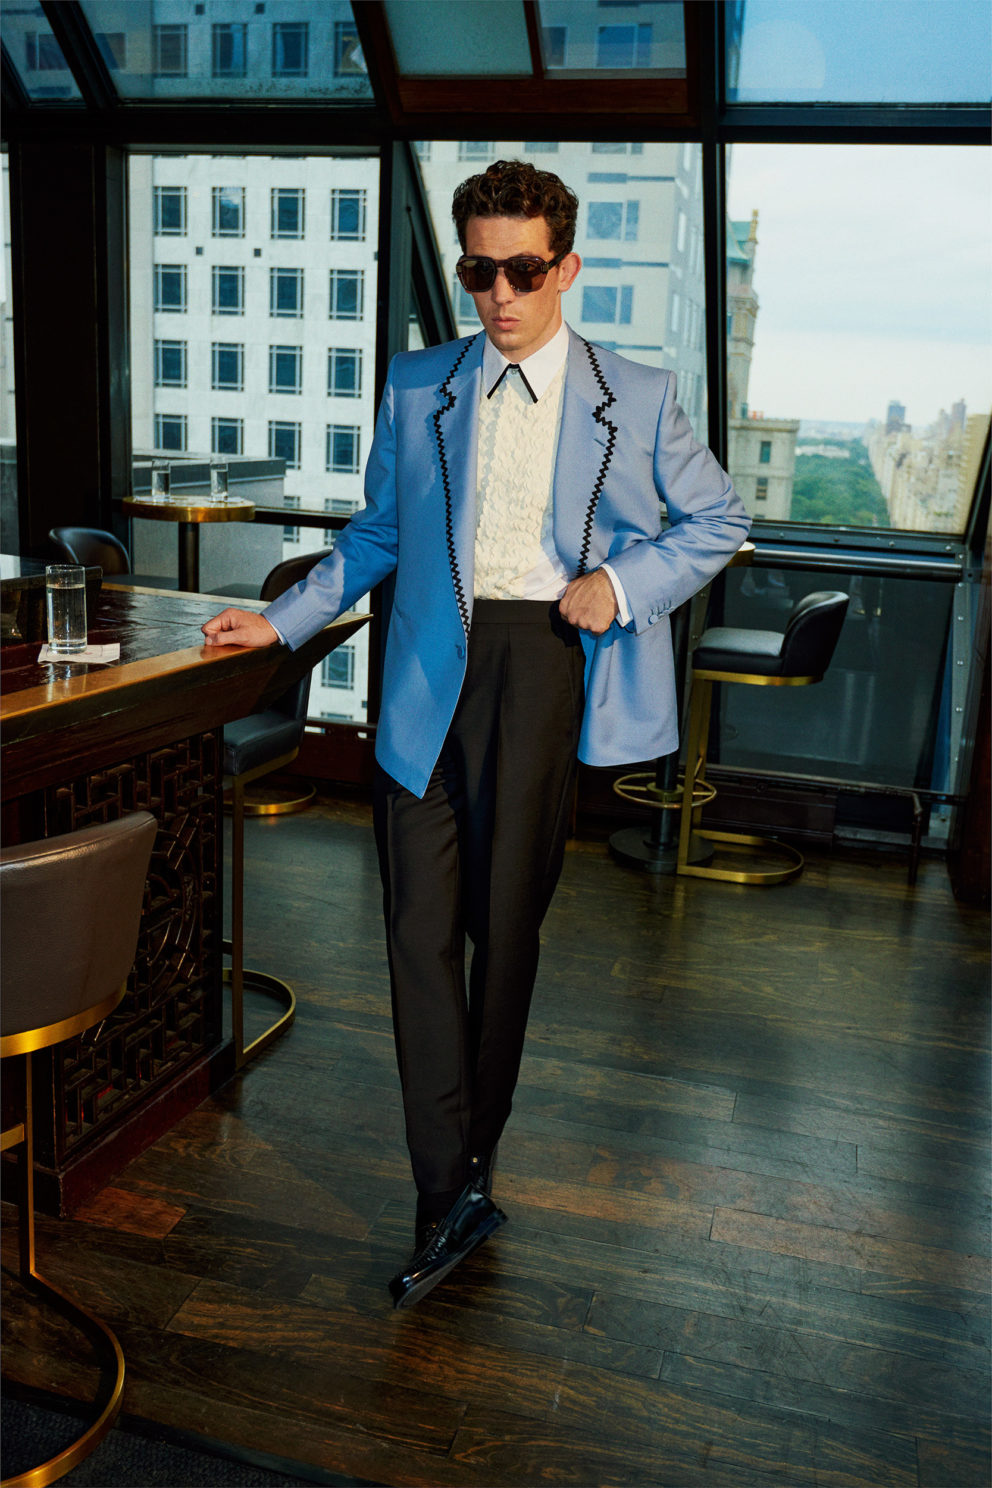 210914 0010 Met Dunhill Josh Oconnor 183 By Christian Hogstedt